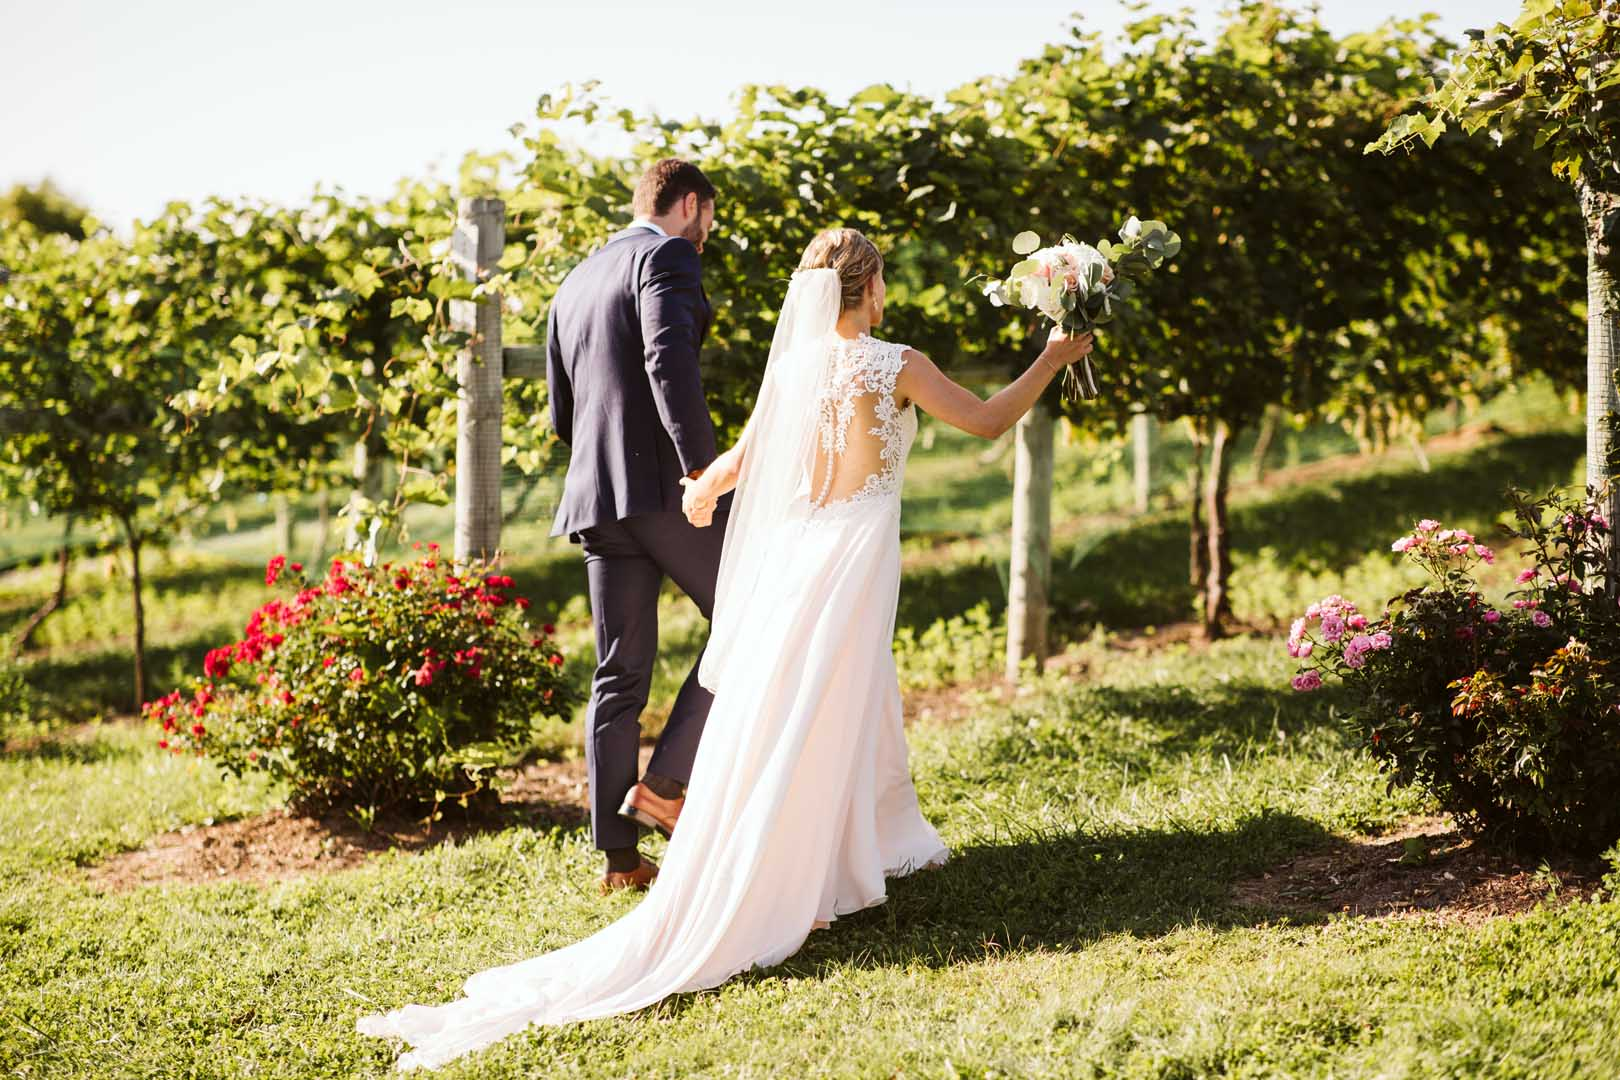 Couple holding hands and walking through grape vines at a wedding vineyard